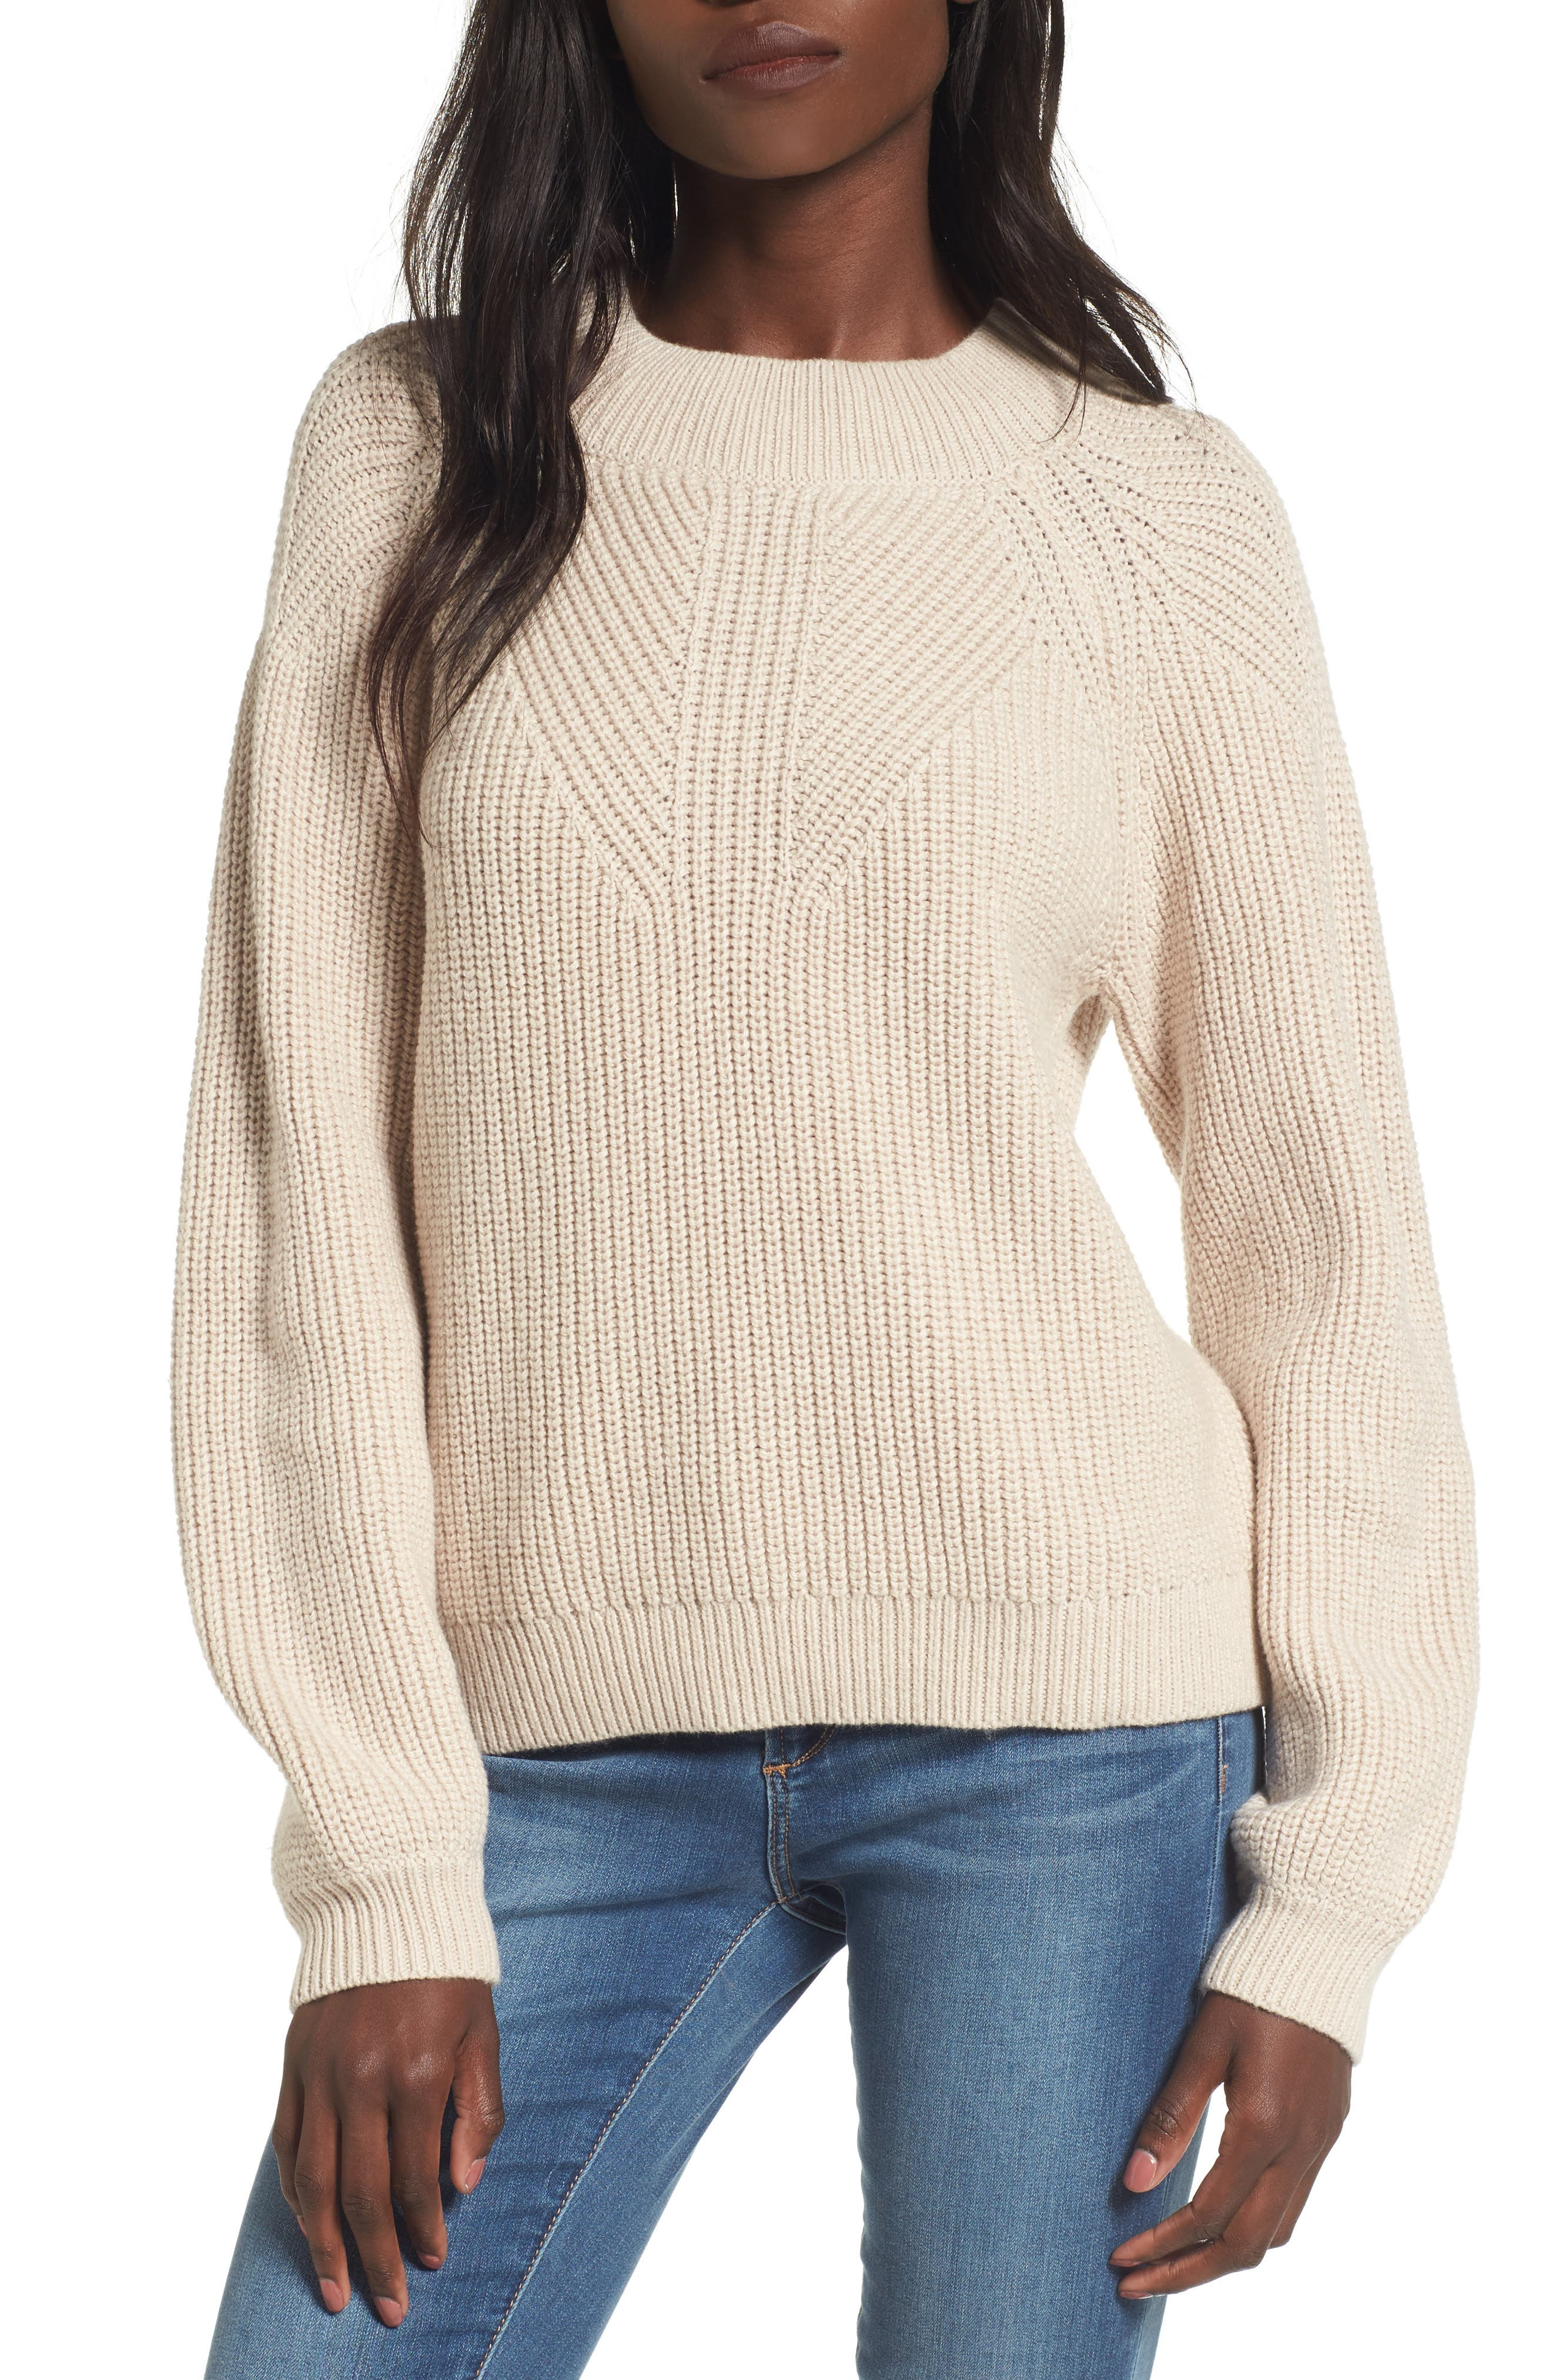 Shaker Stitch Sweater,                             Main thumbnail 1, color,                             270